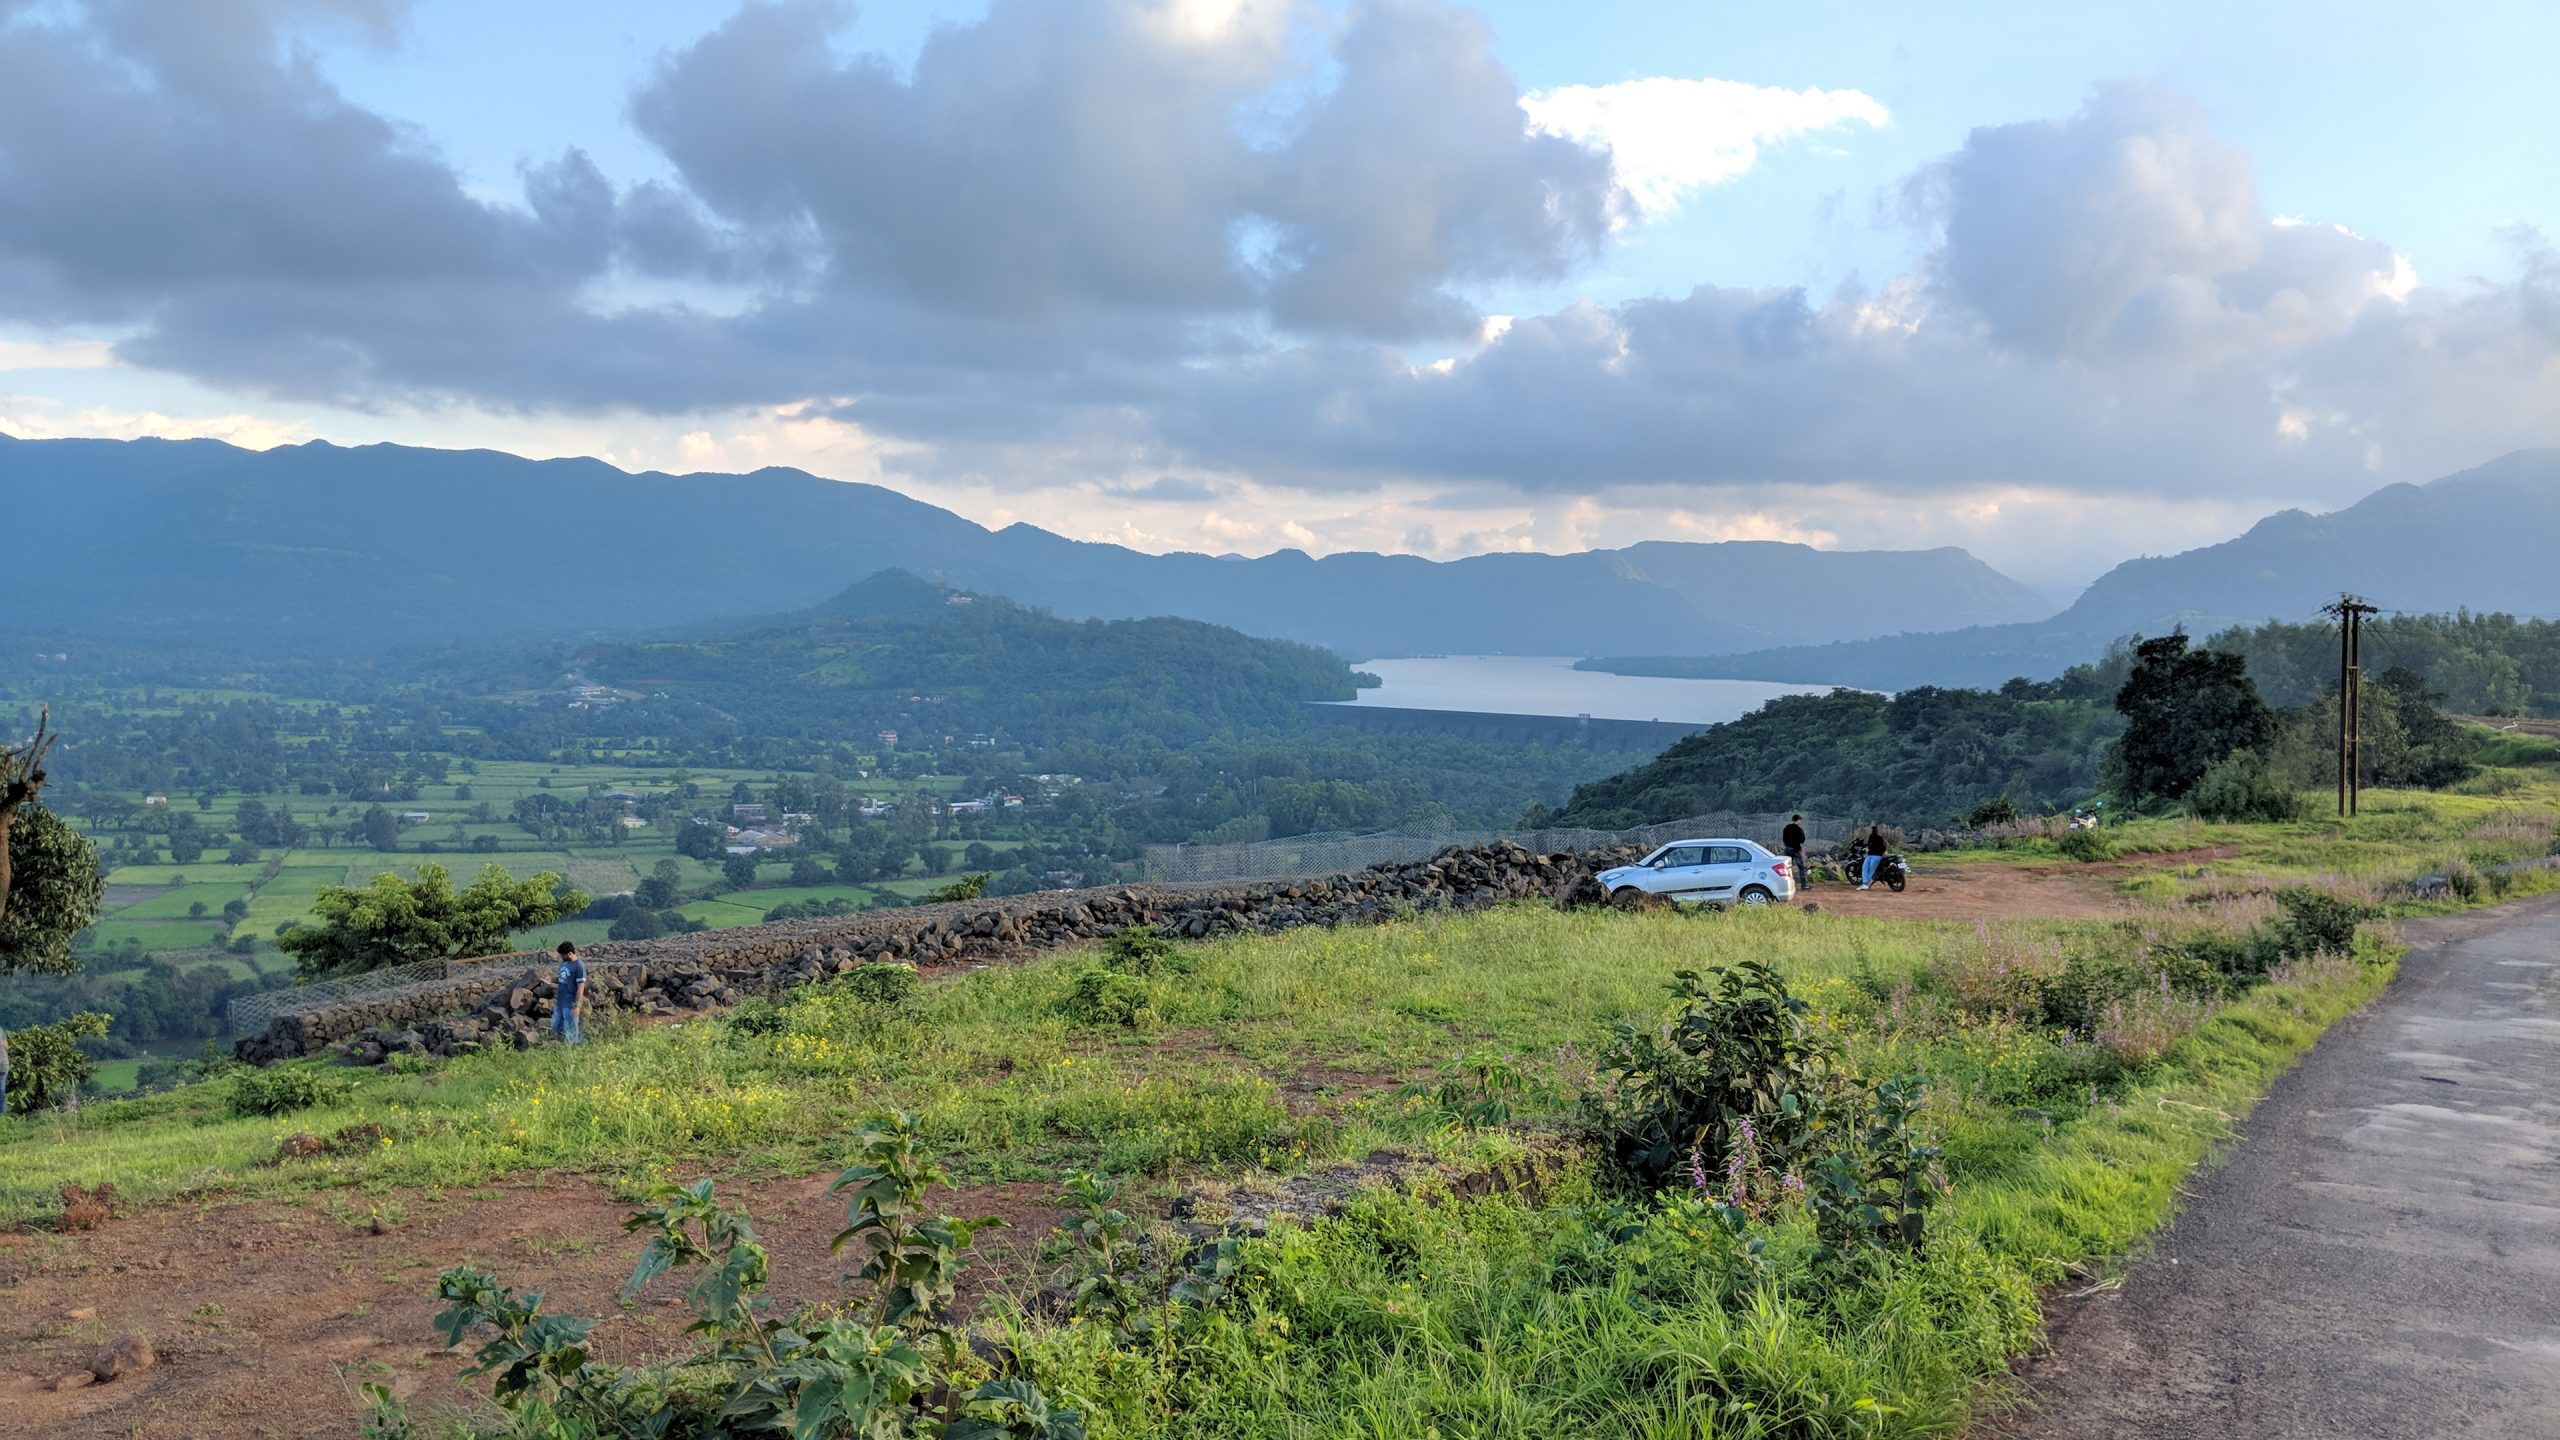 Roadtrips near Mumbai